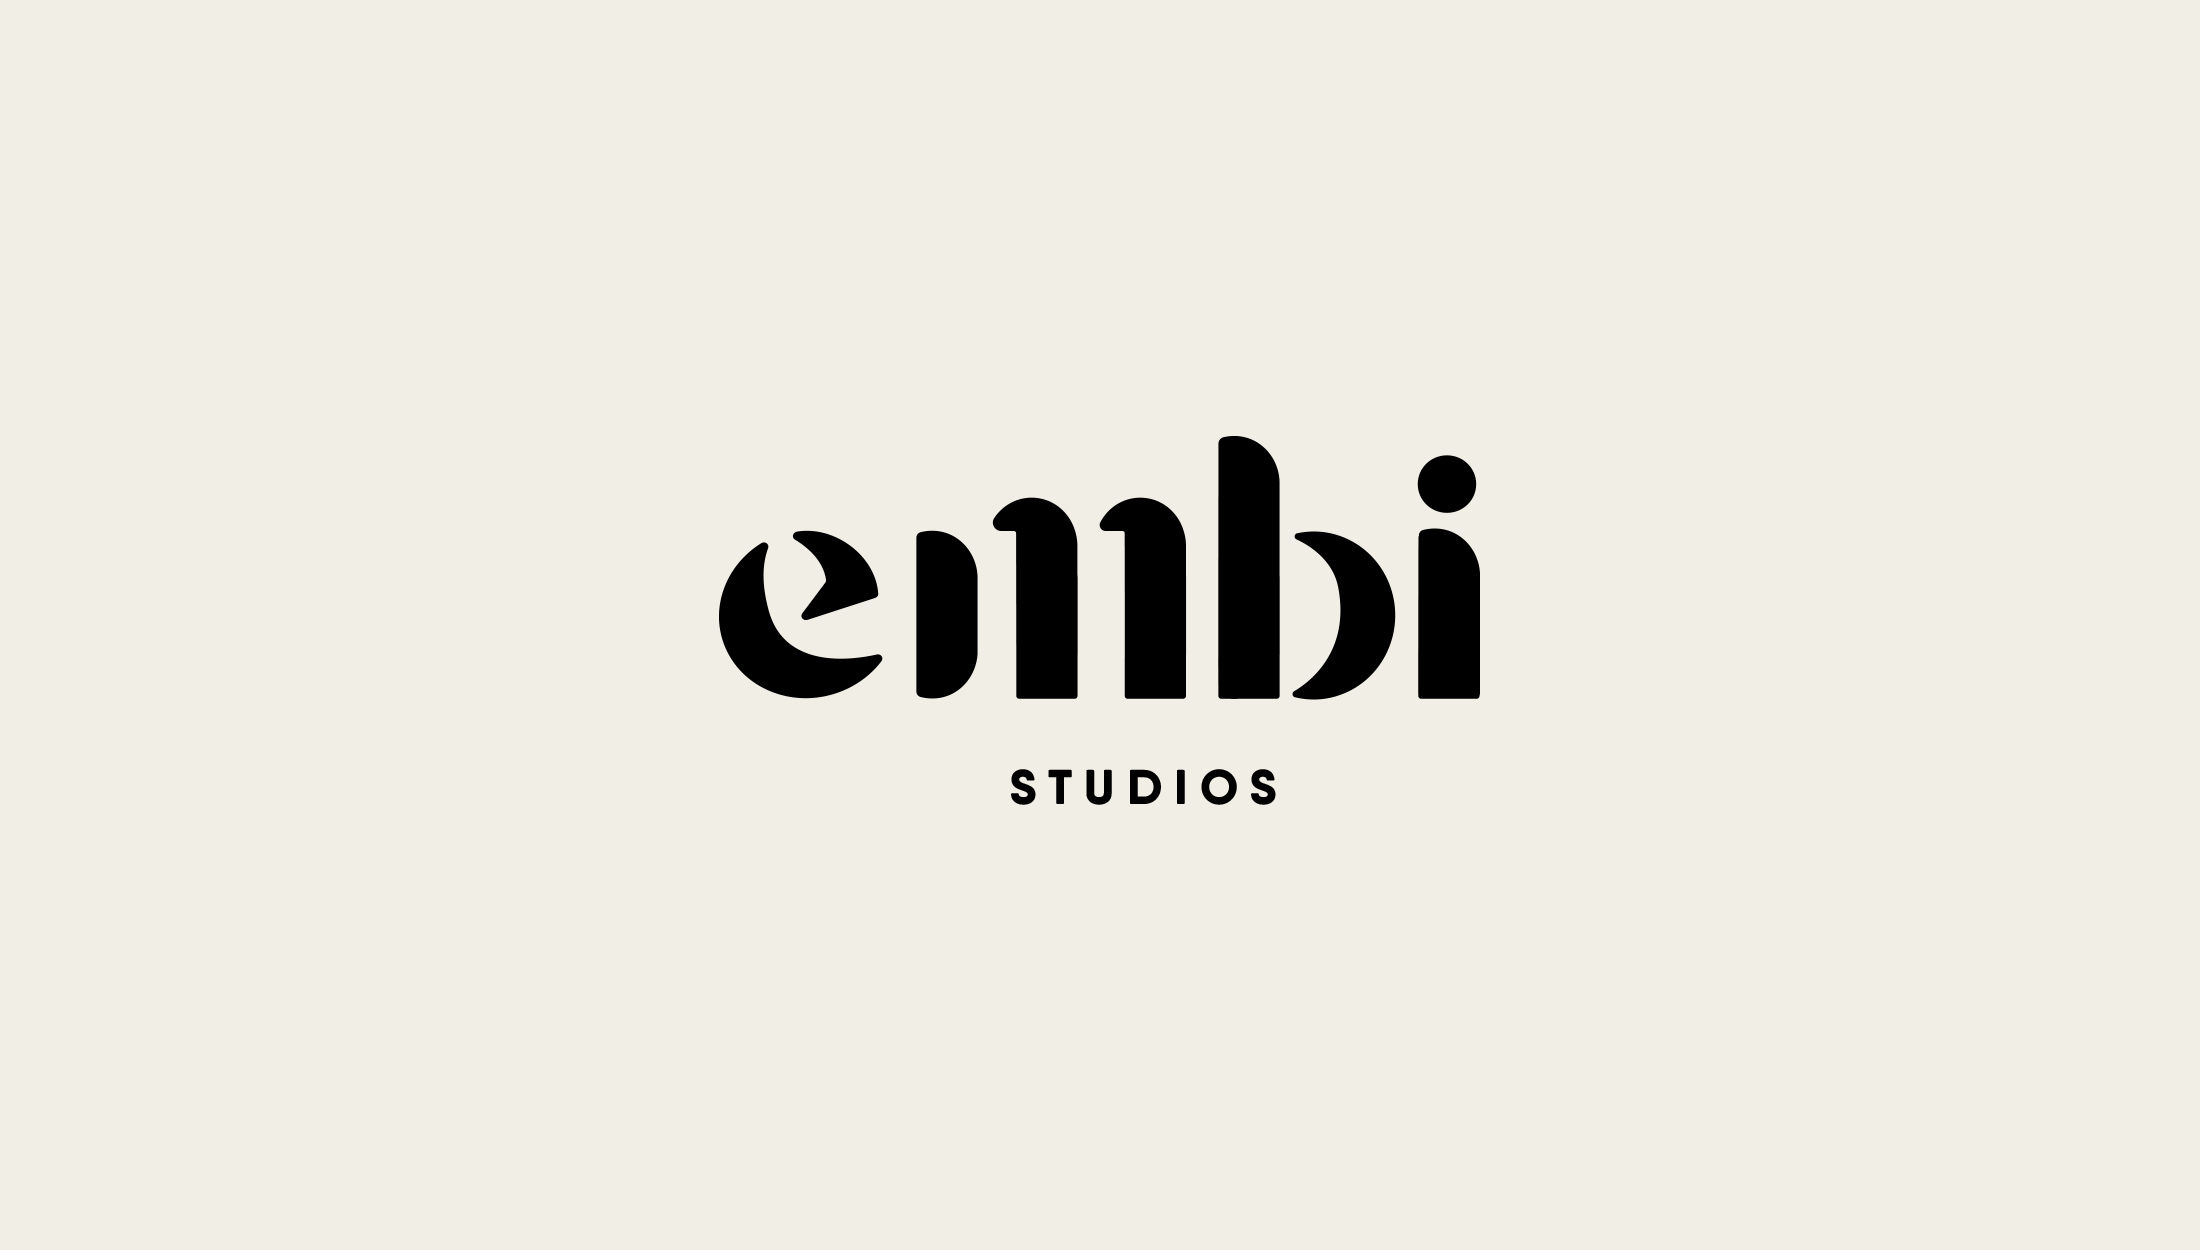 Logo design for Embi Studios, London-based clothing line offering unique items and limited edition seasons - designed by Wiltshire-based graphic designer, Kaye Huett